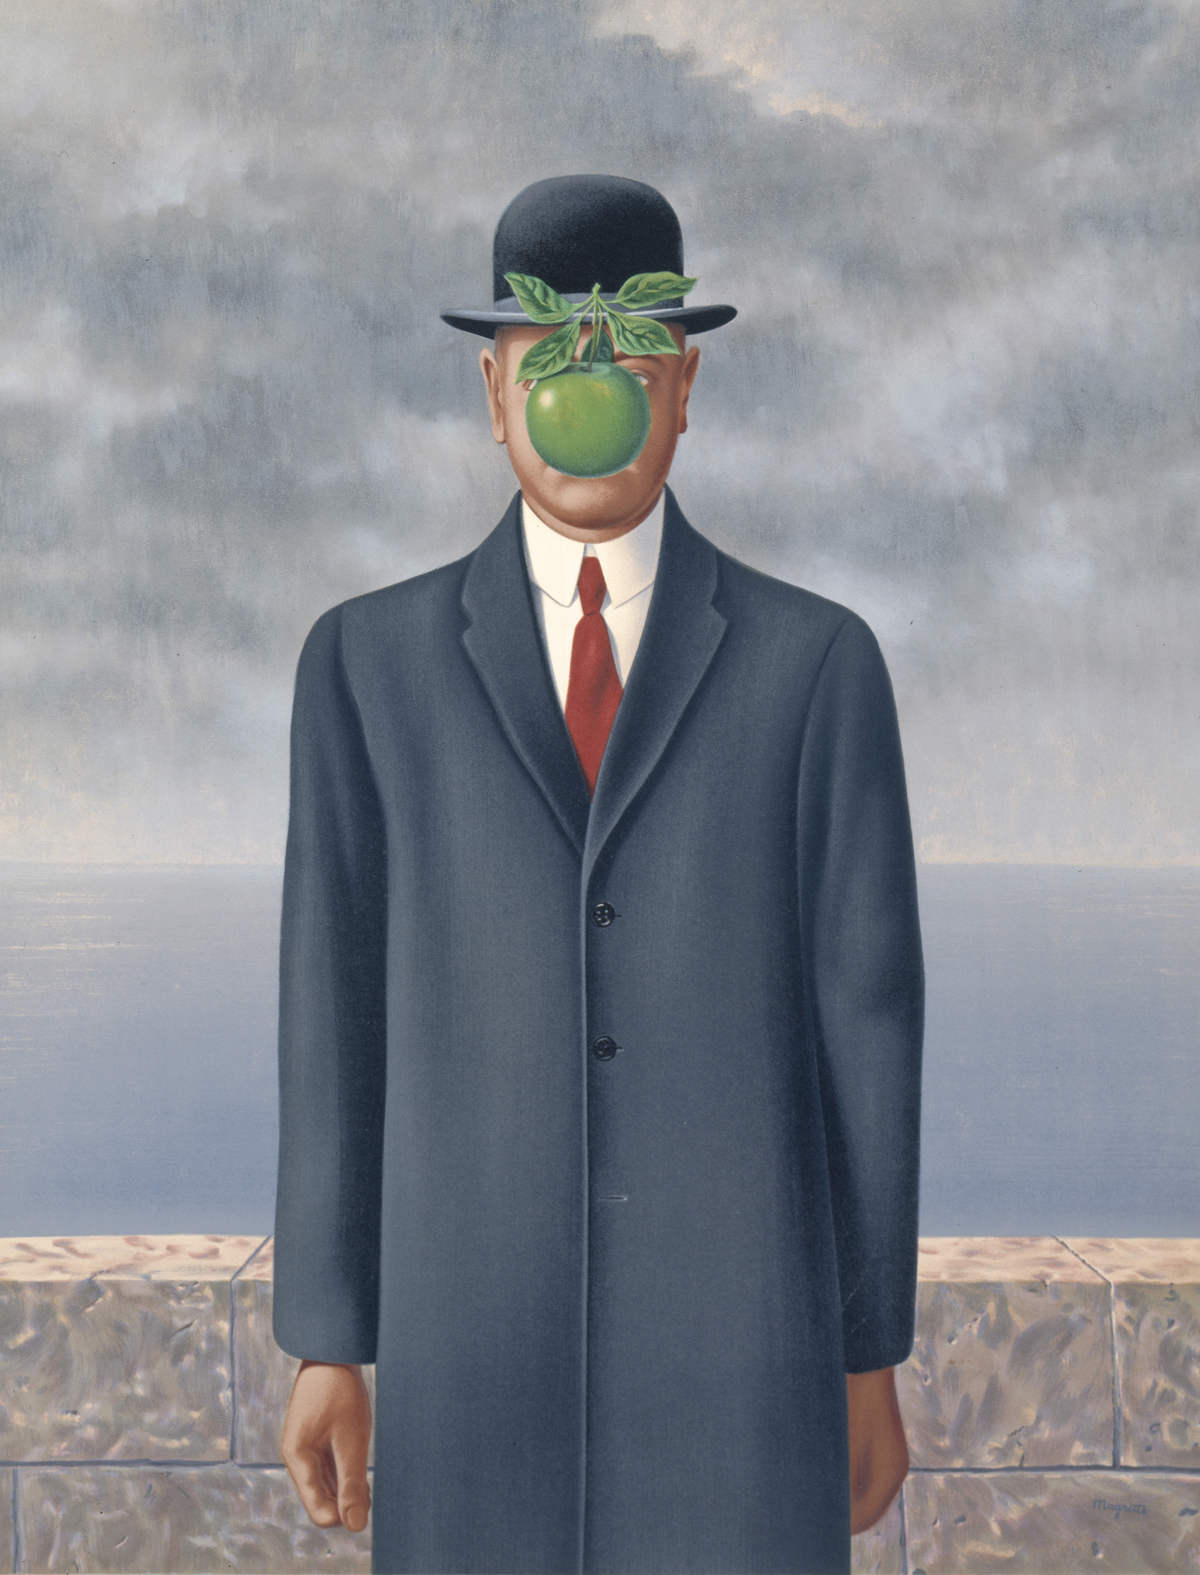 René Magritte,  Son of Man , 1964. © Charly Herscovici, Brussels / Artists Rights Society (ARS), New York. Courtesy of the San Francisco Museum of Modern Art.